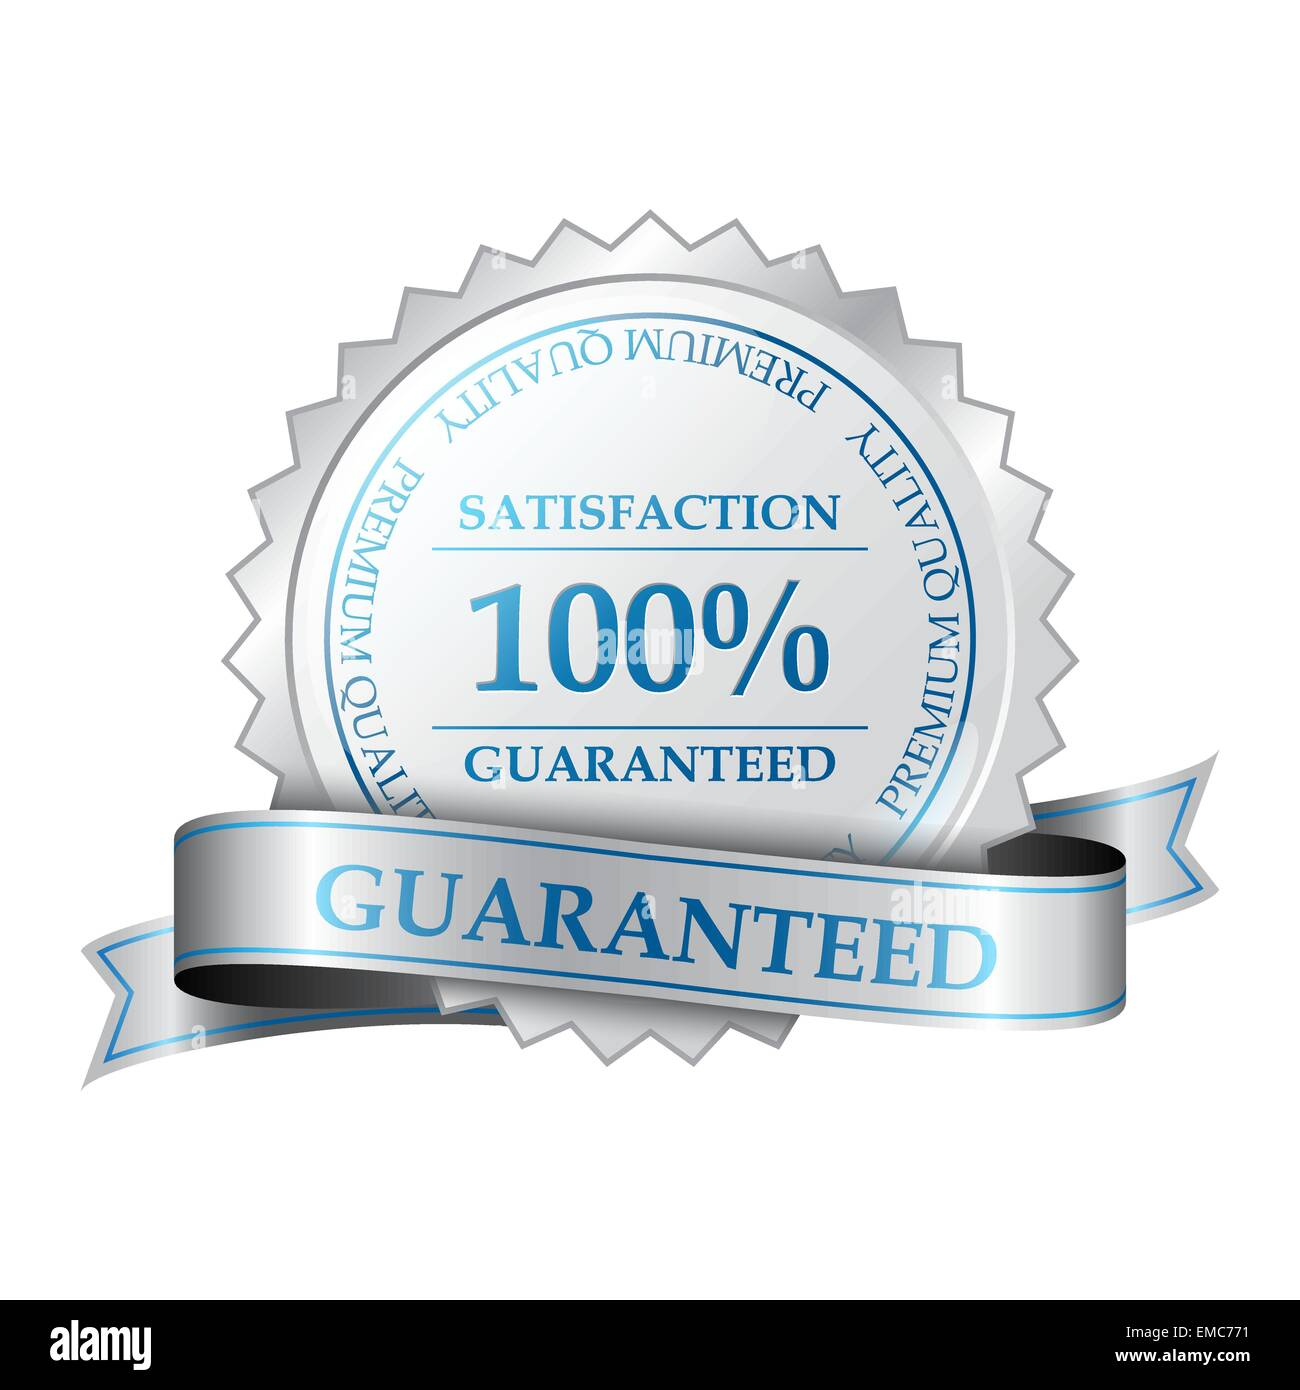 Premium 100% satisfaction guarantee label - Stock Image